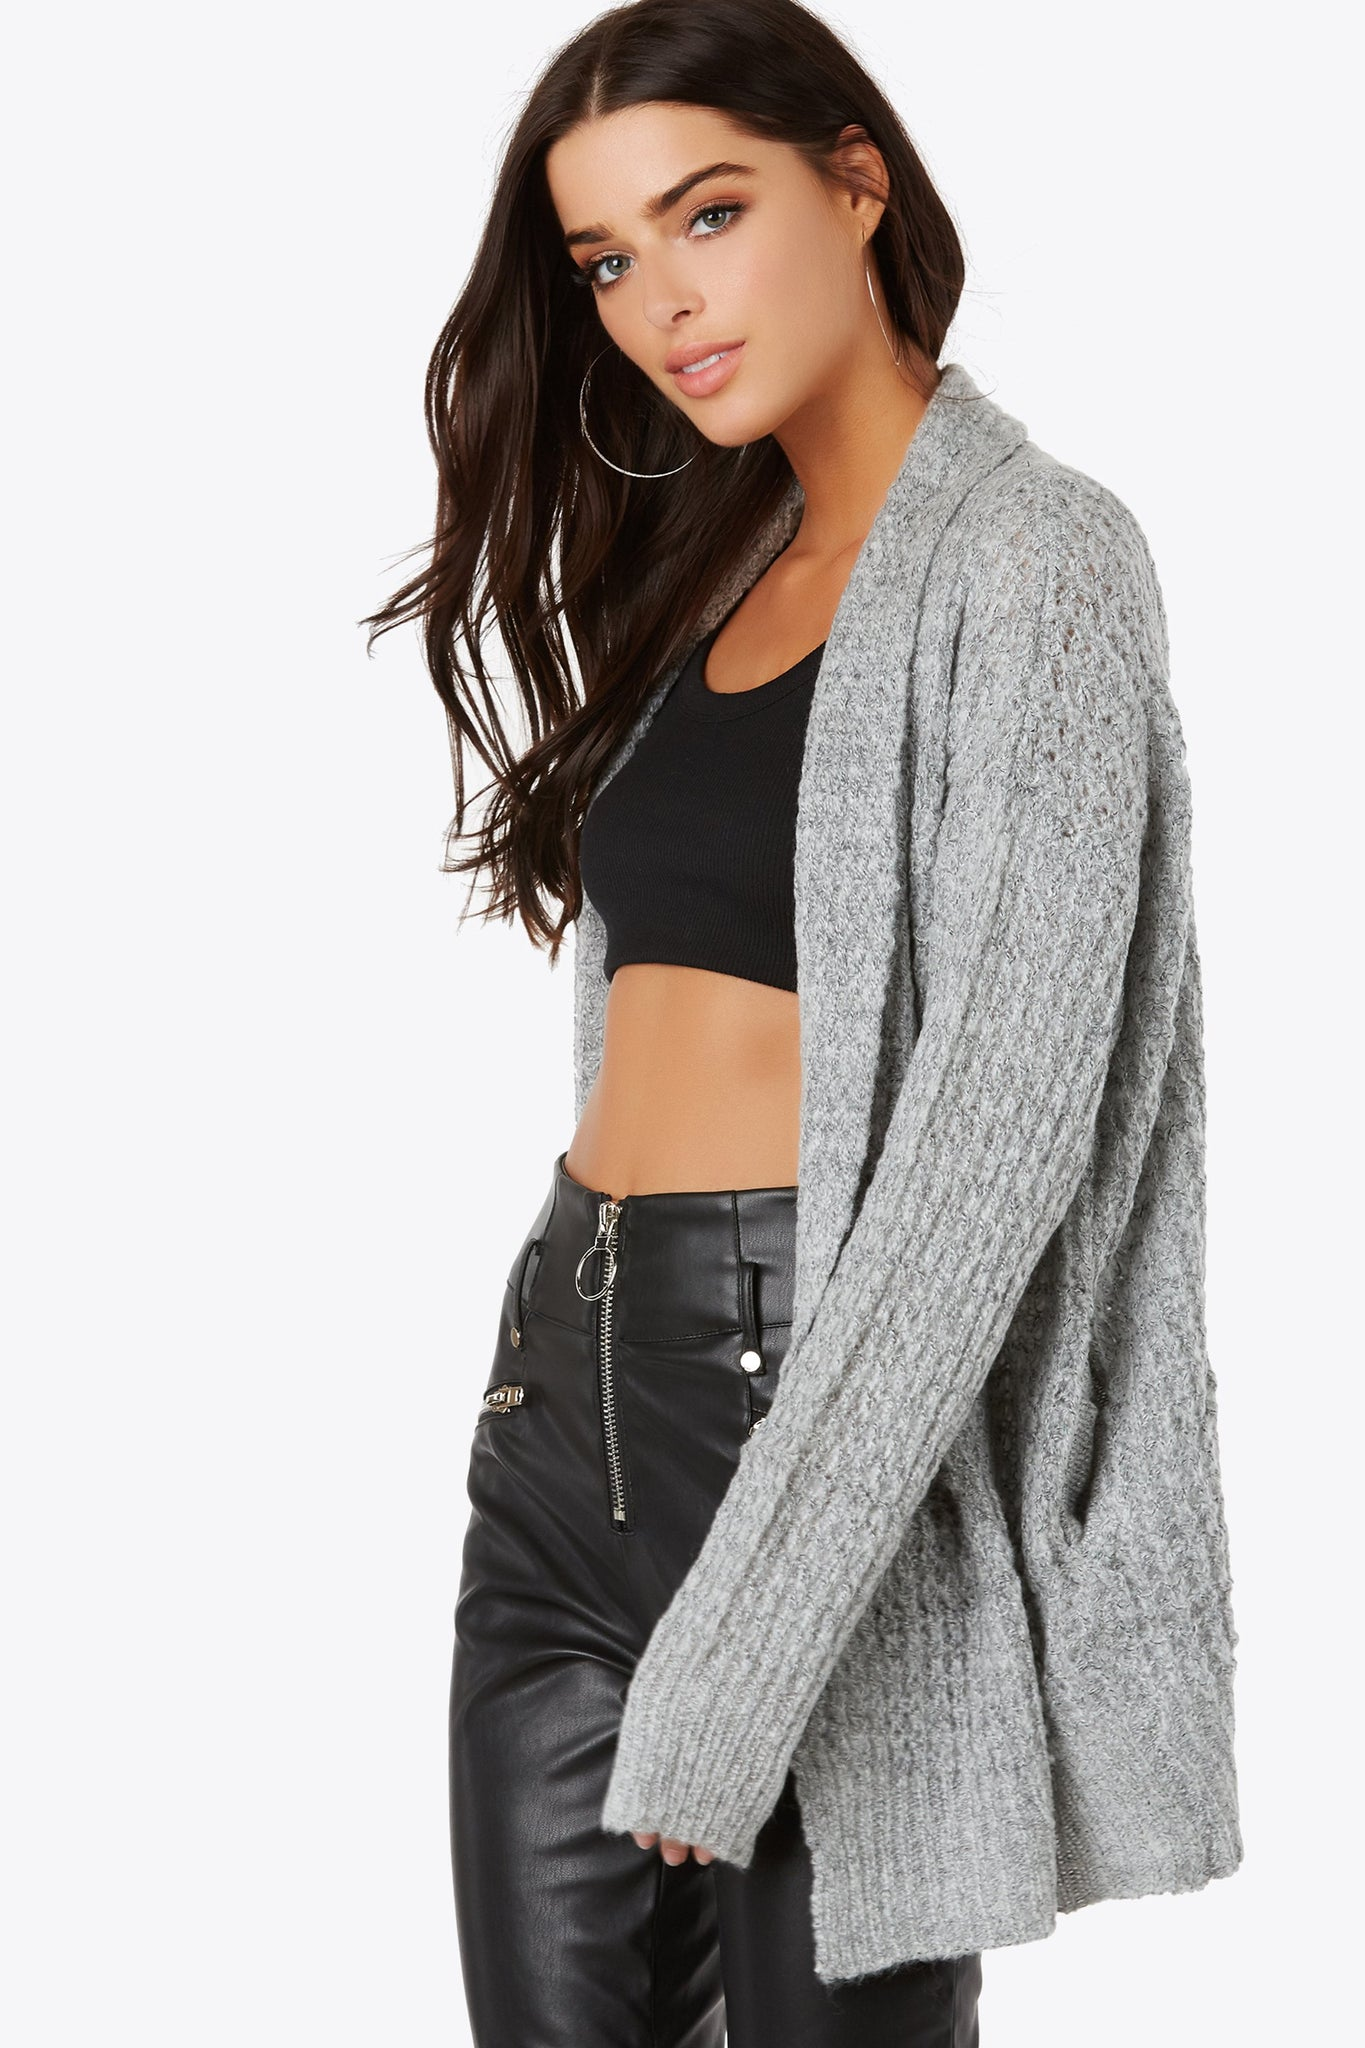 Throw this knitted cardigan over any outfit. Features front hidden pockets and rib knit trim.